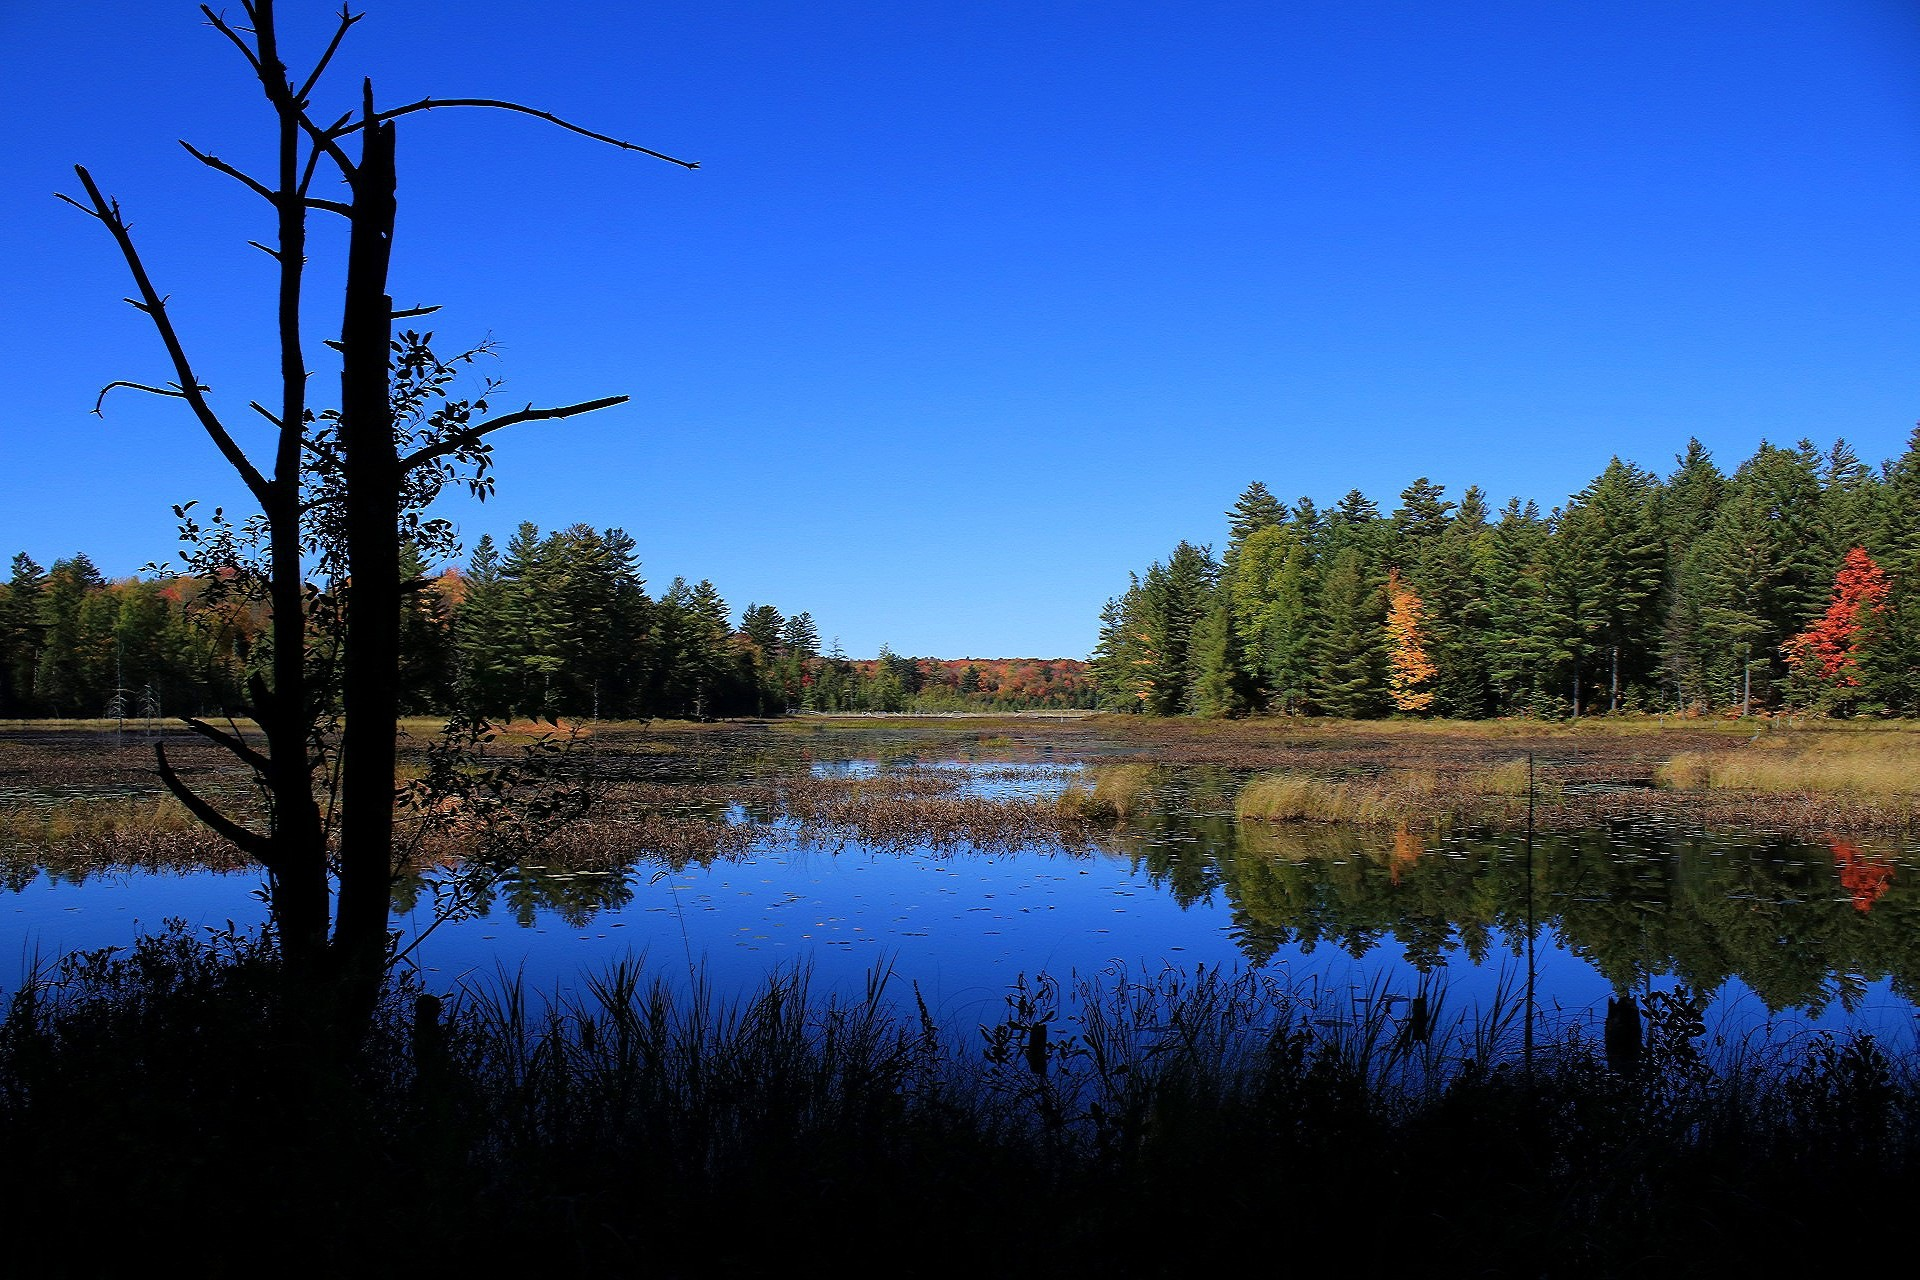 Adirondack Park New York State by Michelle Marie